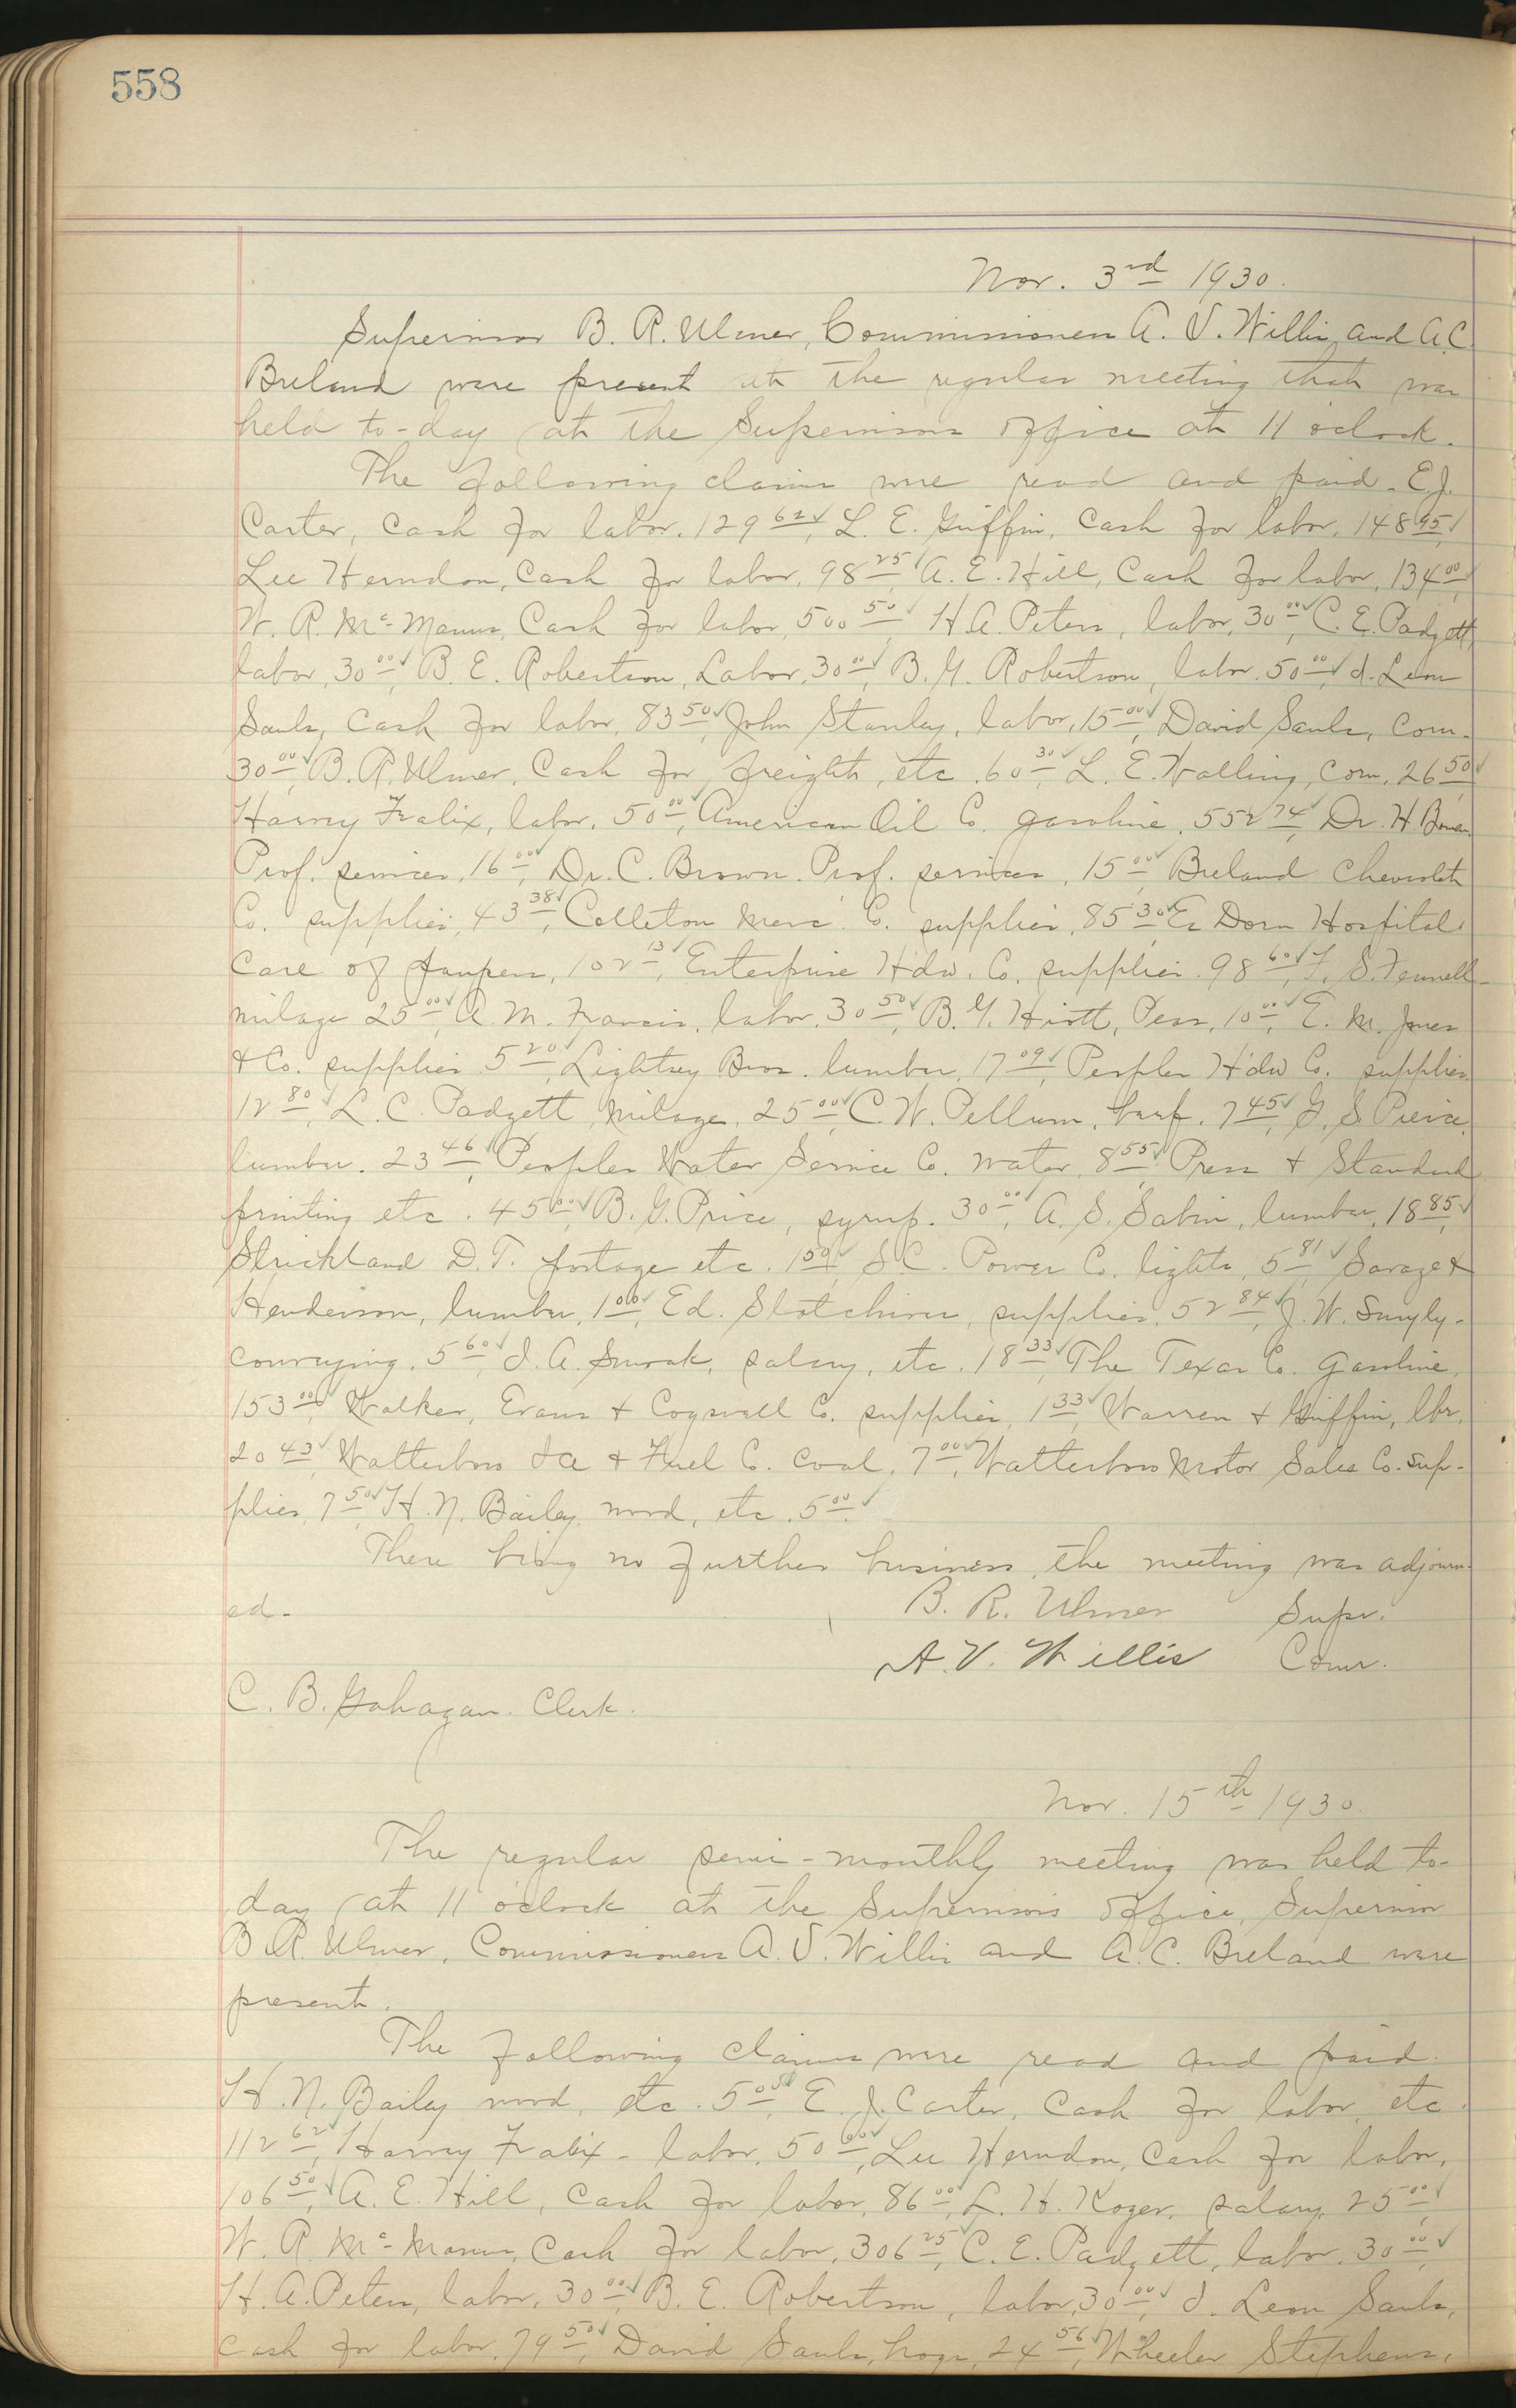 Colleton County Highway Commission Ledger, Page 558